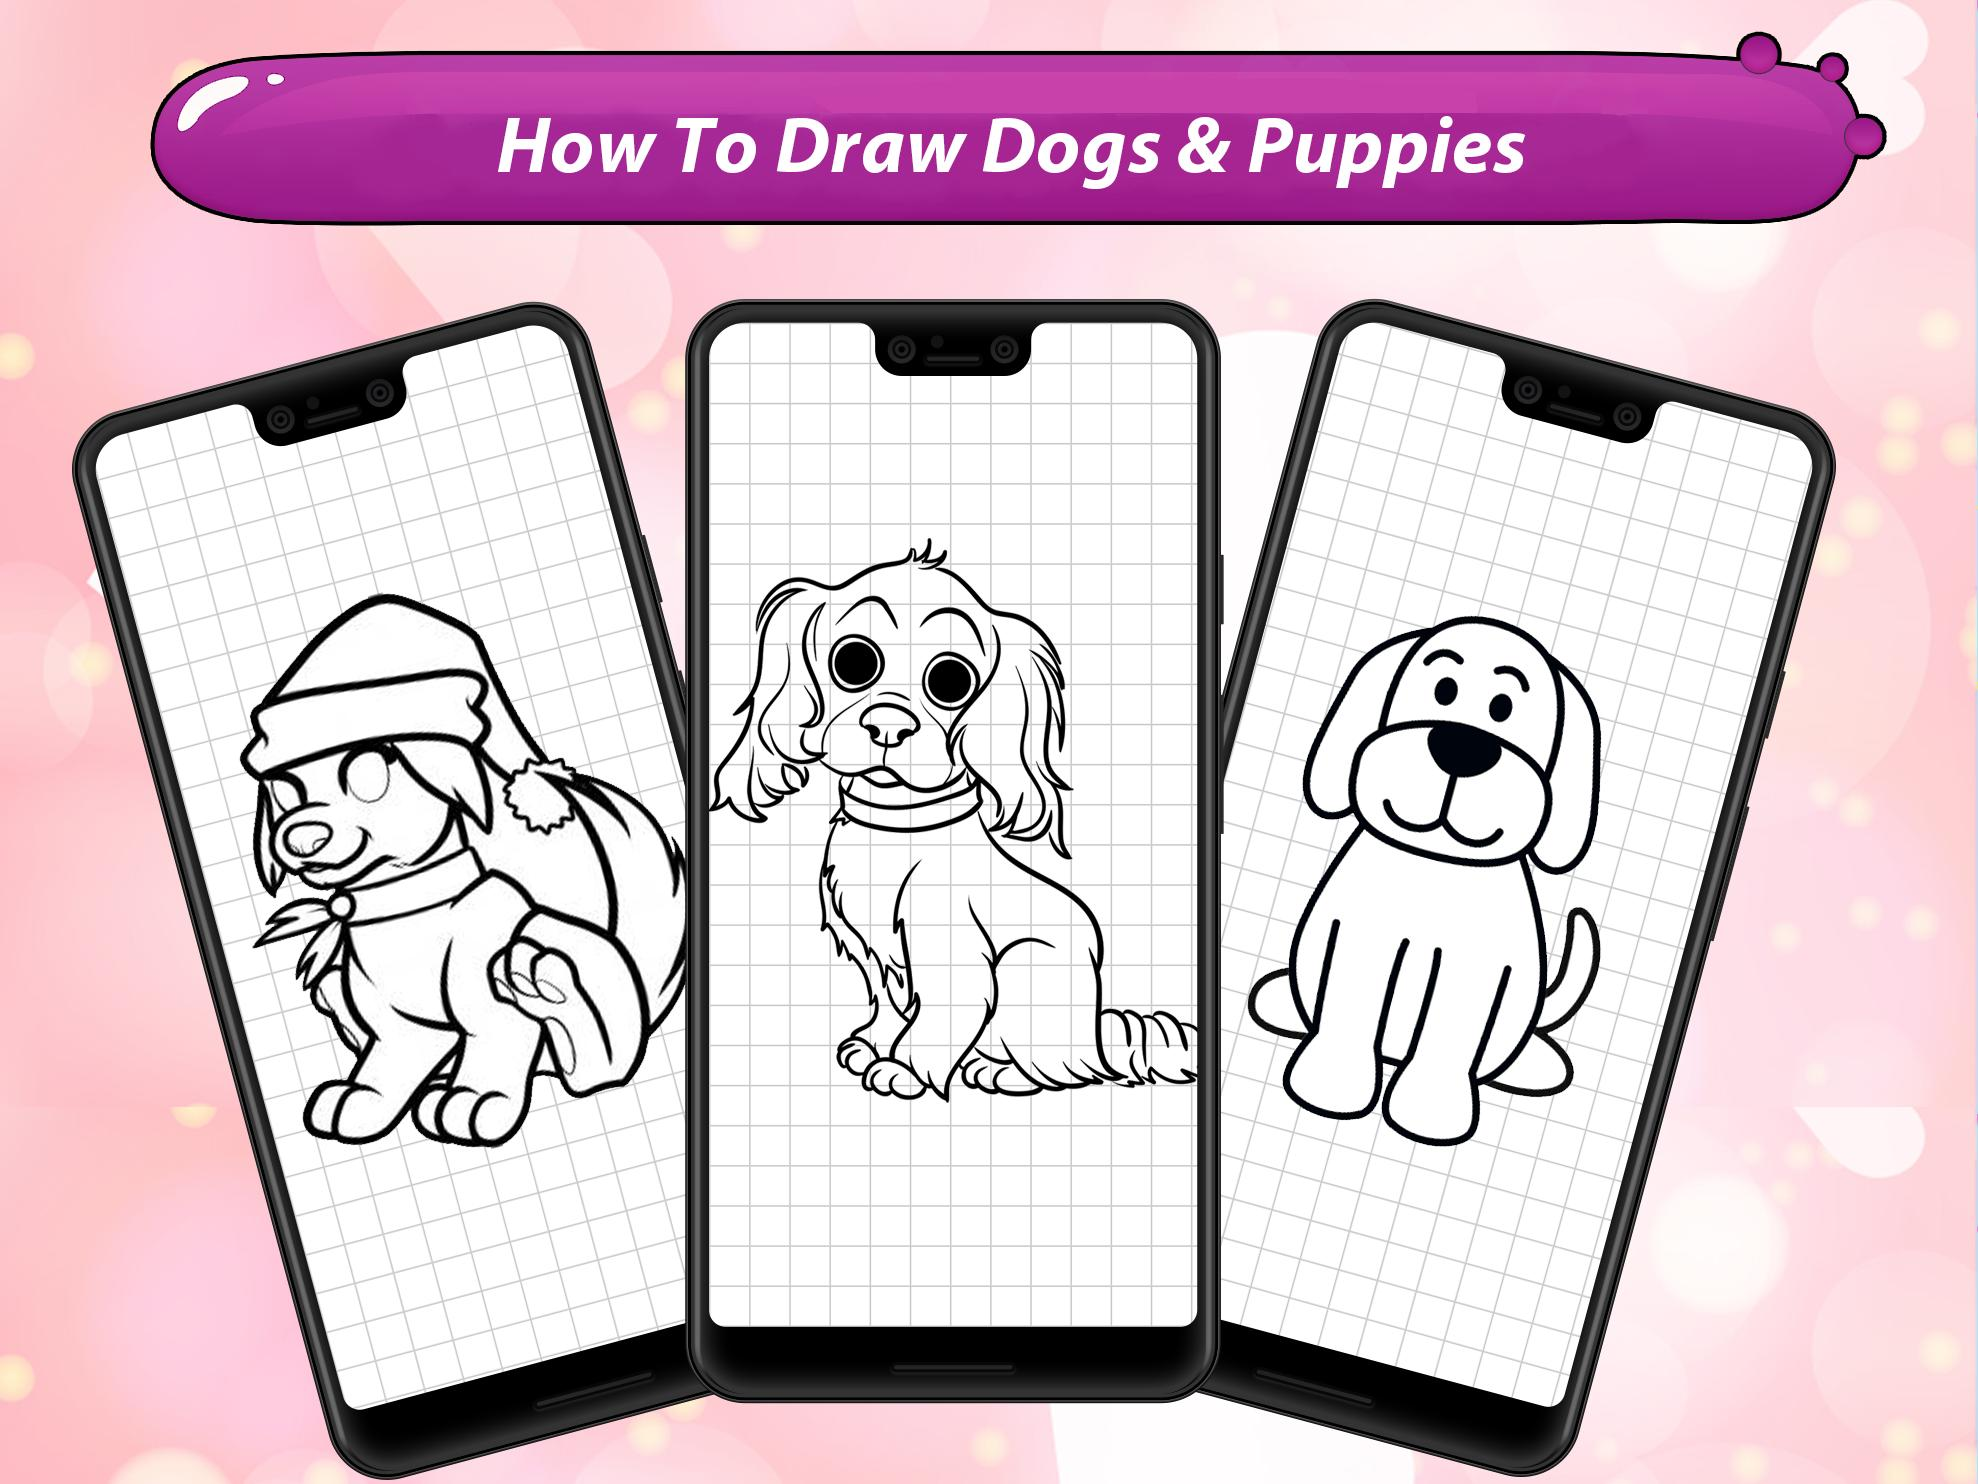 How To Draw Cute Dogs Puppies For Android Apk Download